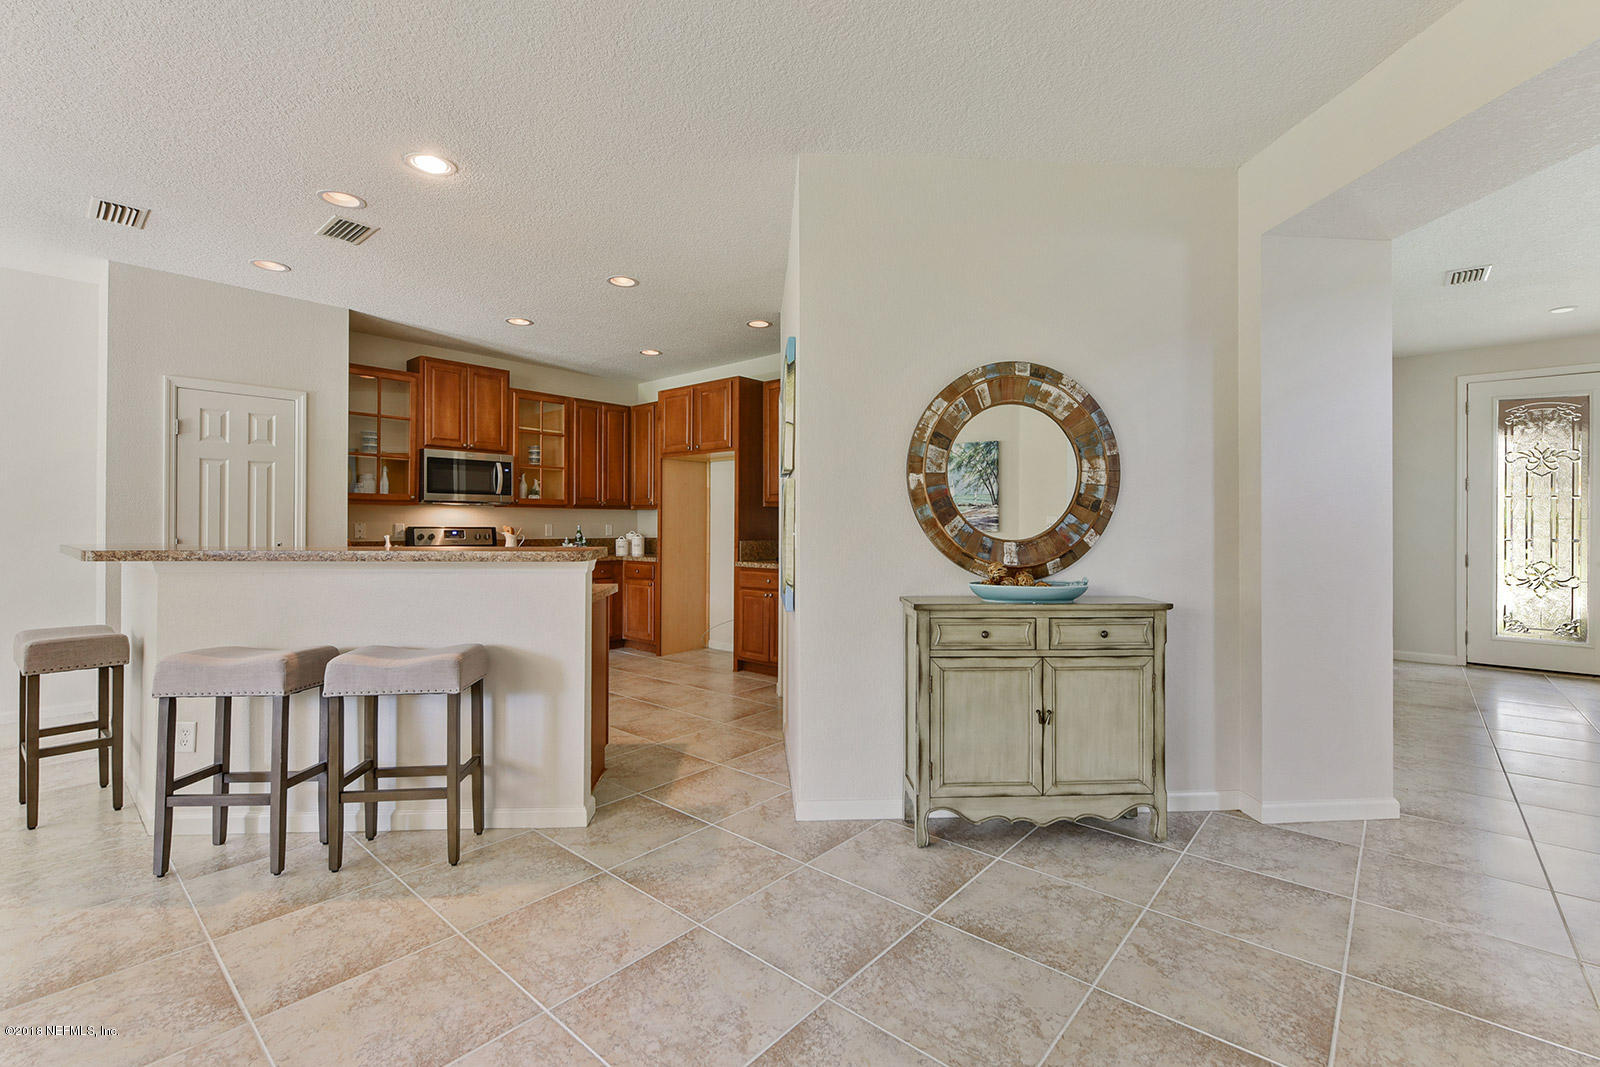 413 TALBOT BAY, ST AUGUSTINE, FLORIDA 32086, 4 Bedrooms Bedrooms, ,2 BathroomsBathrooms,Residential - single family,For sale,TALBOT BAY,952554